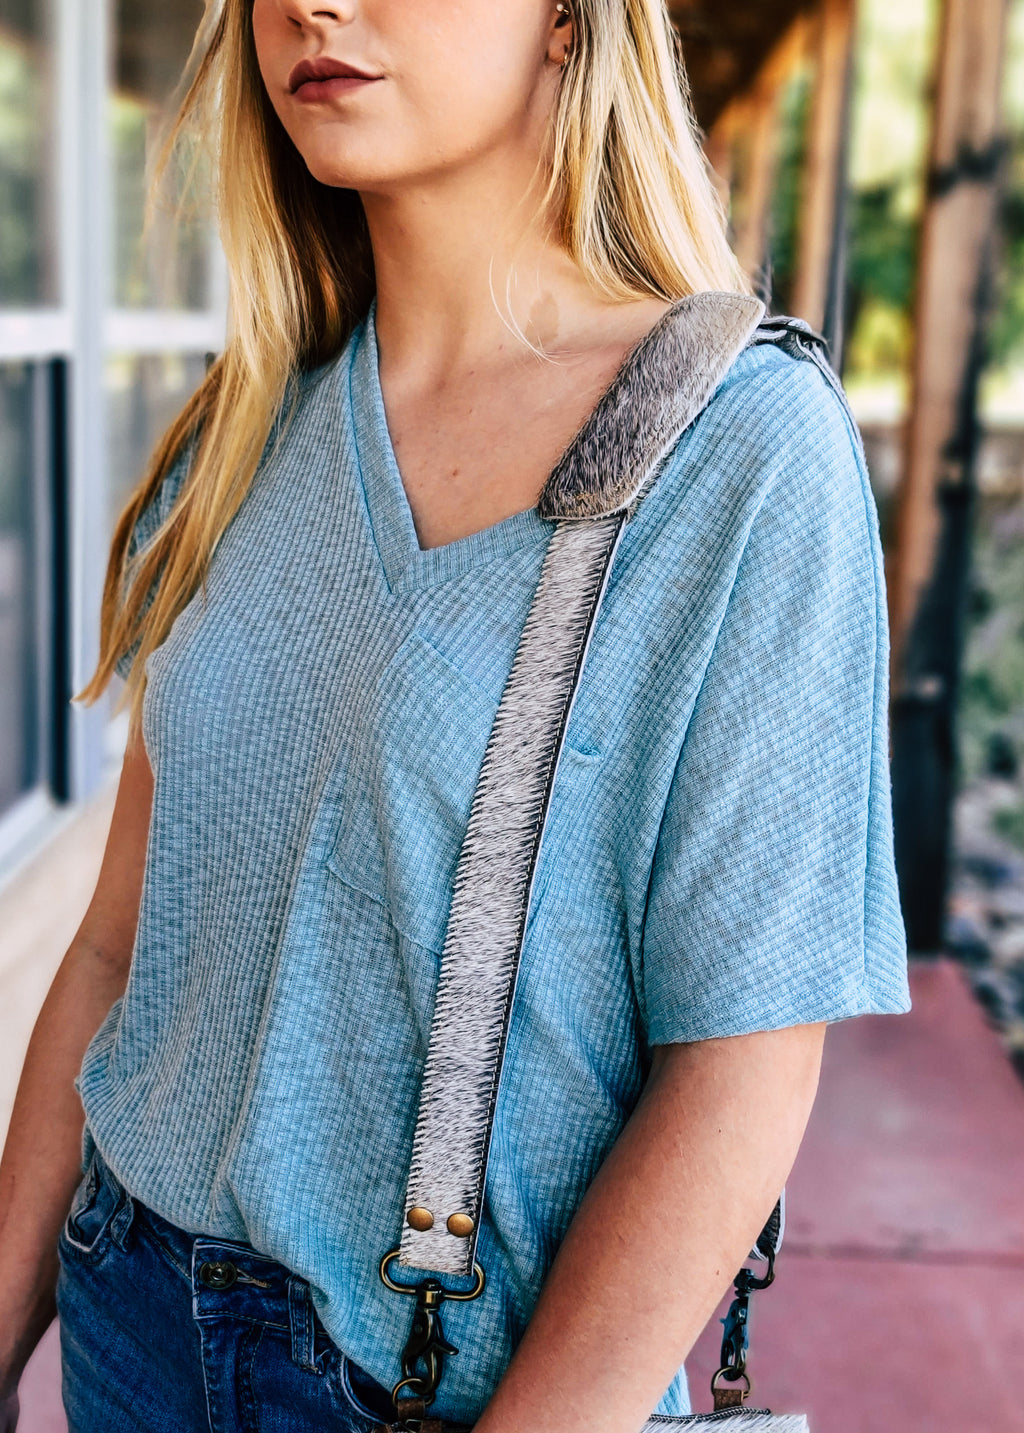 Grey Cowhide Purse Strap on model with blue shirt